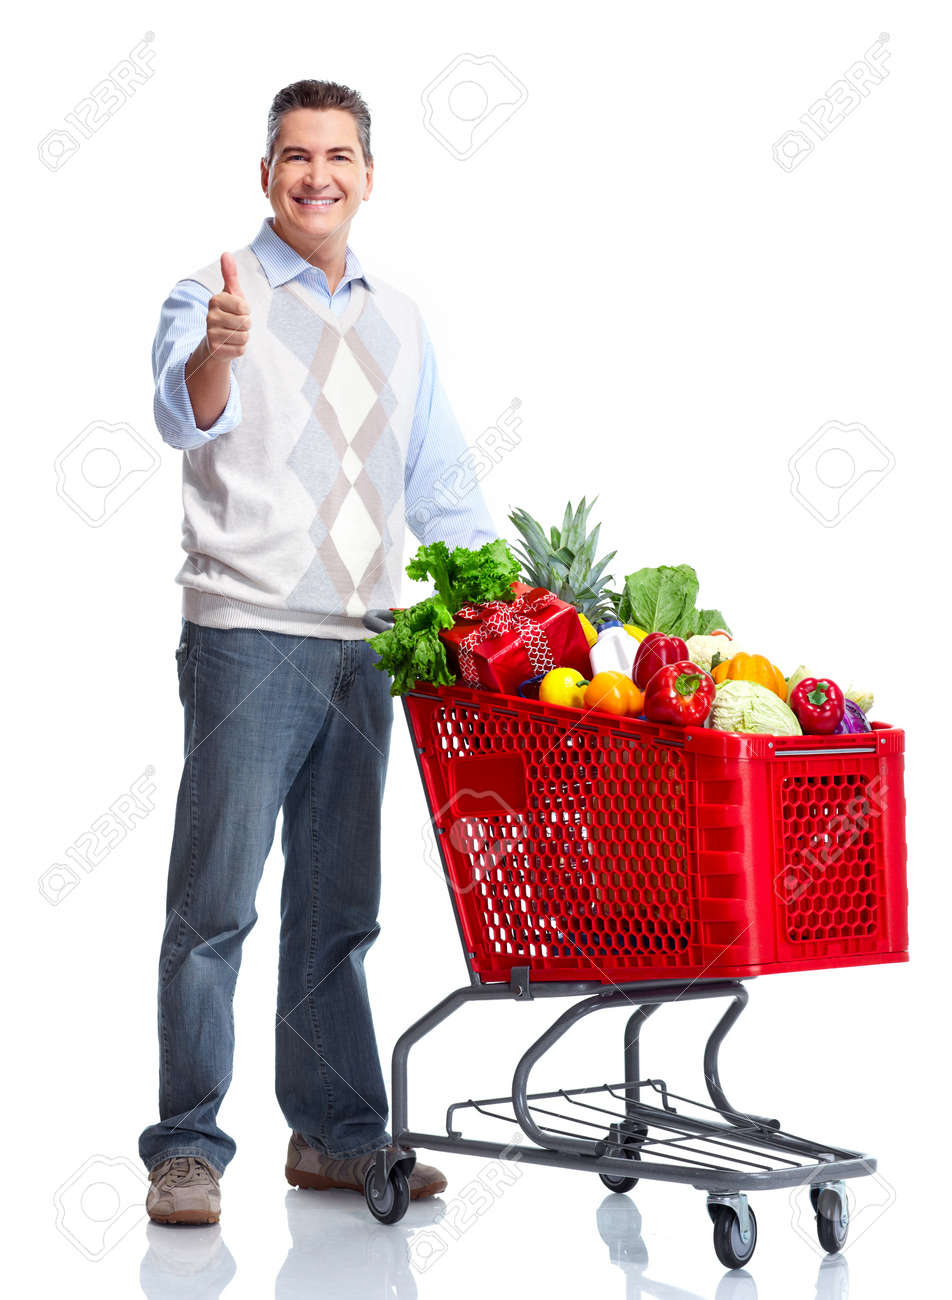 Happy man with a shopping cart. Stock Photo - 10930303